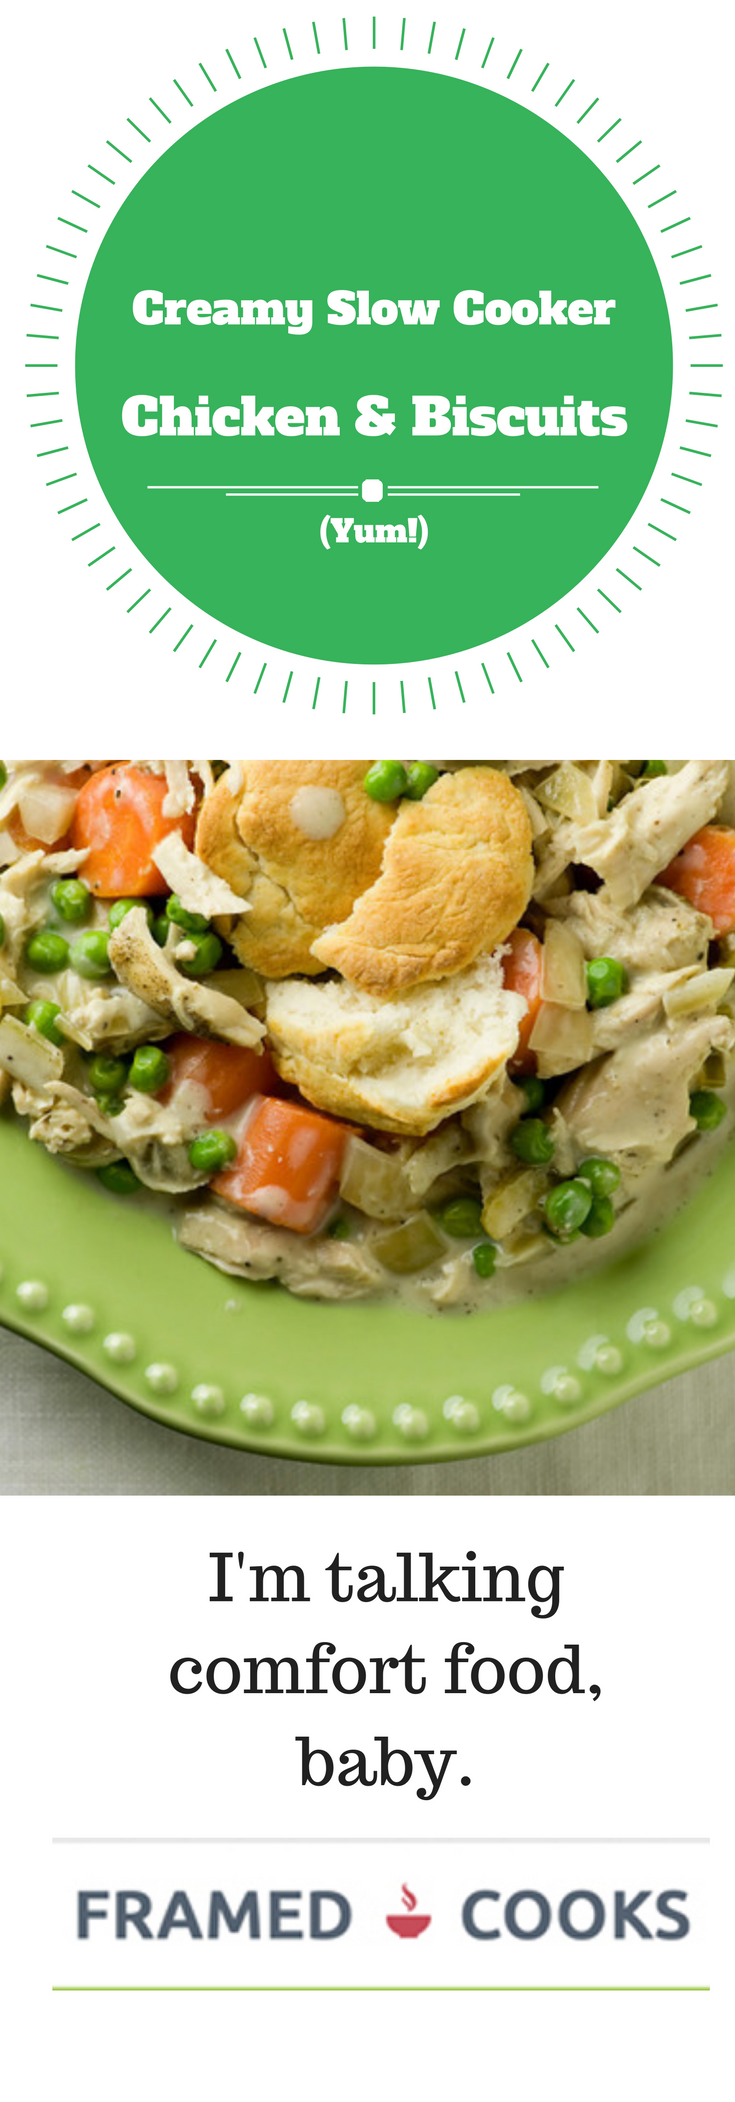 Creamy slow cooker chicken with biscuits is the easy and delicious supper you want to come home to!